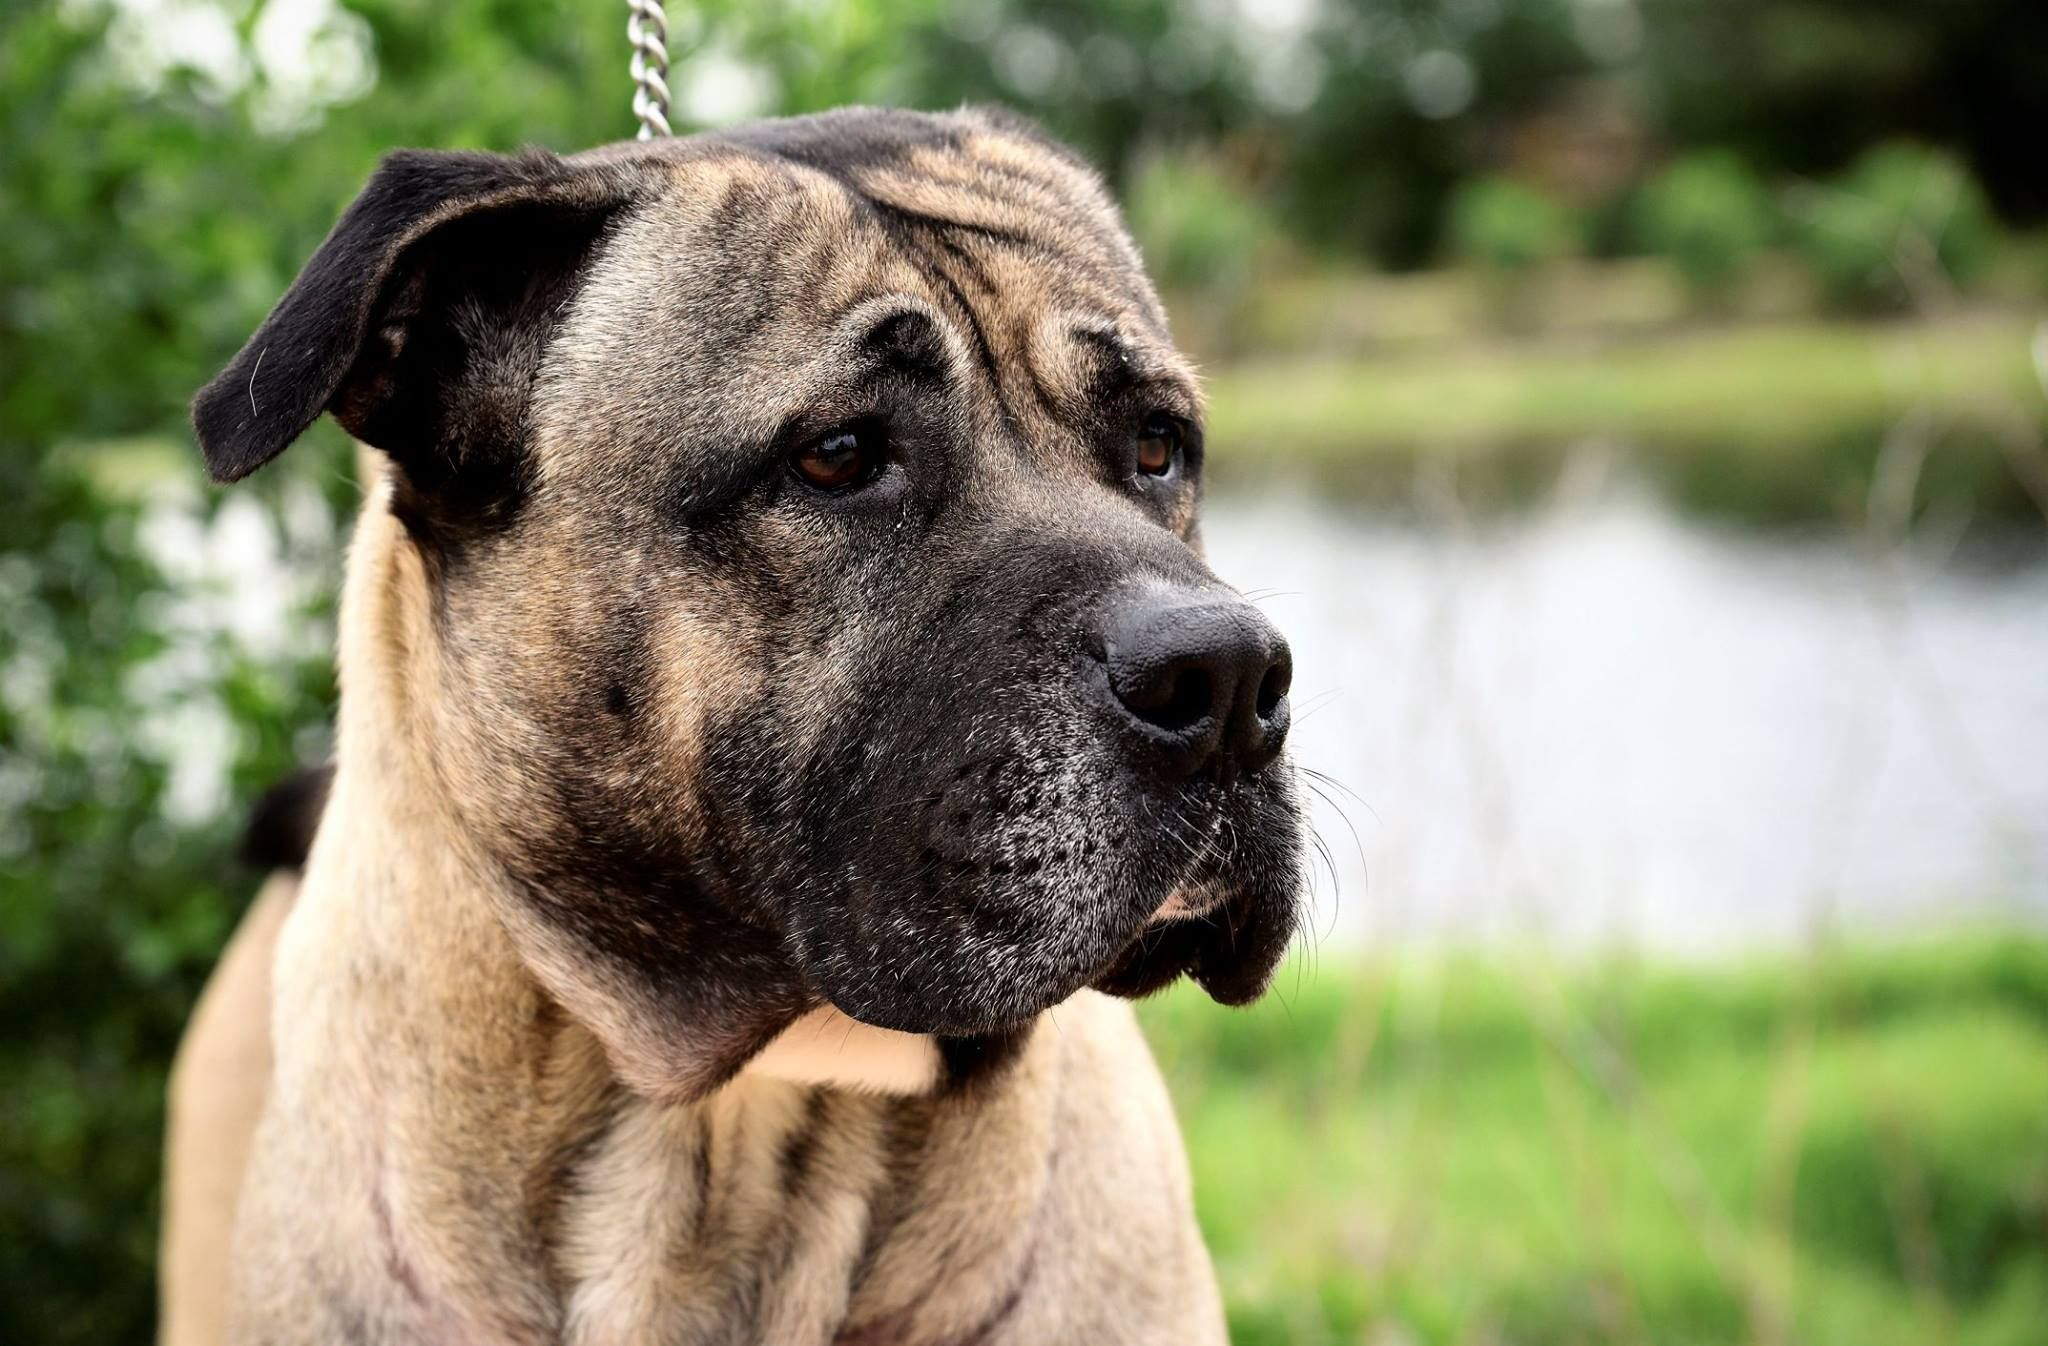 05/05/17HOUSTON AREA Cheeto is a Cane Corso Mastiff